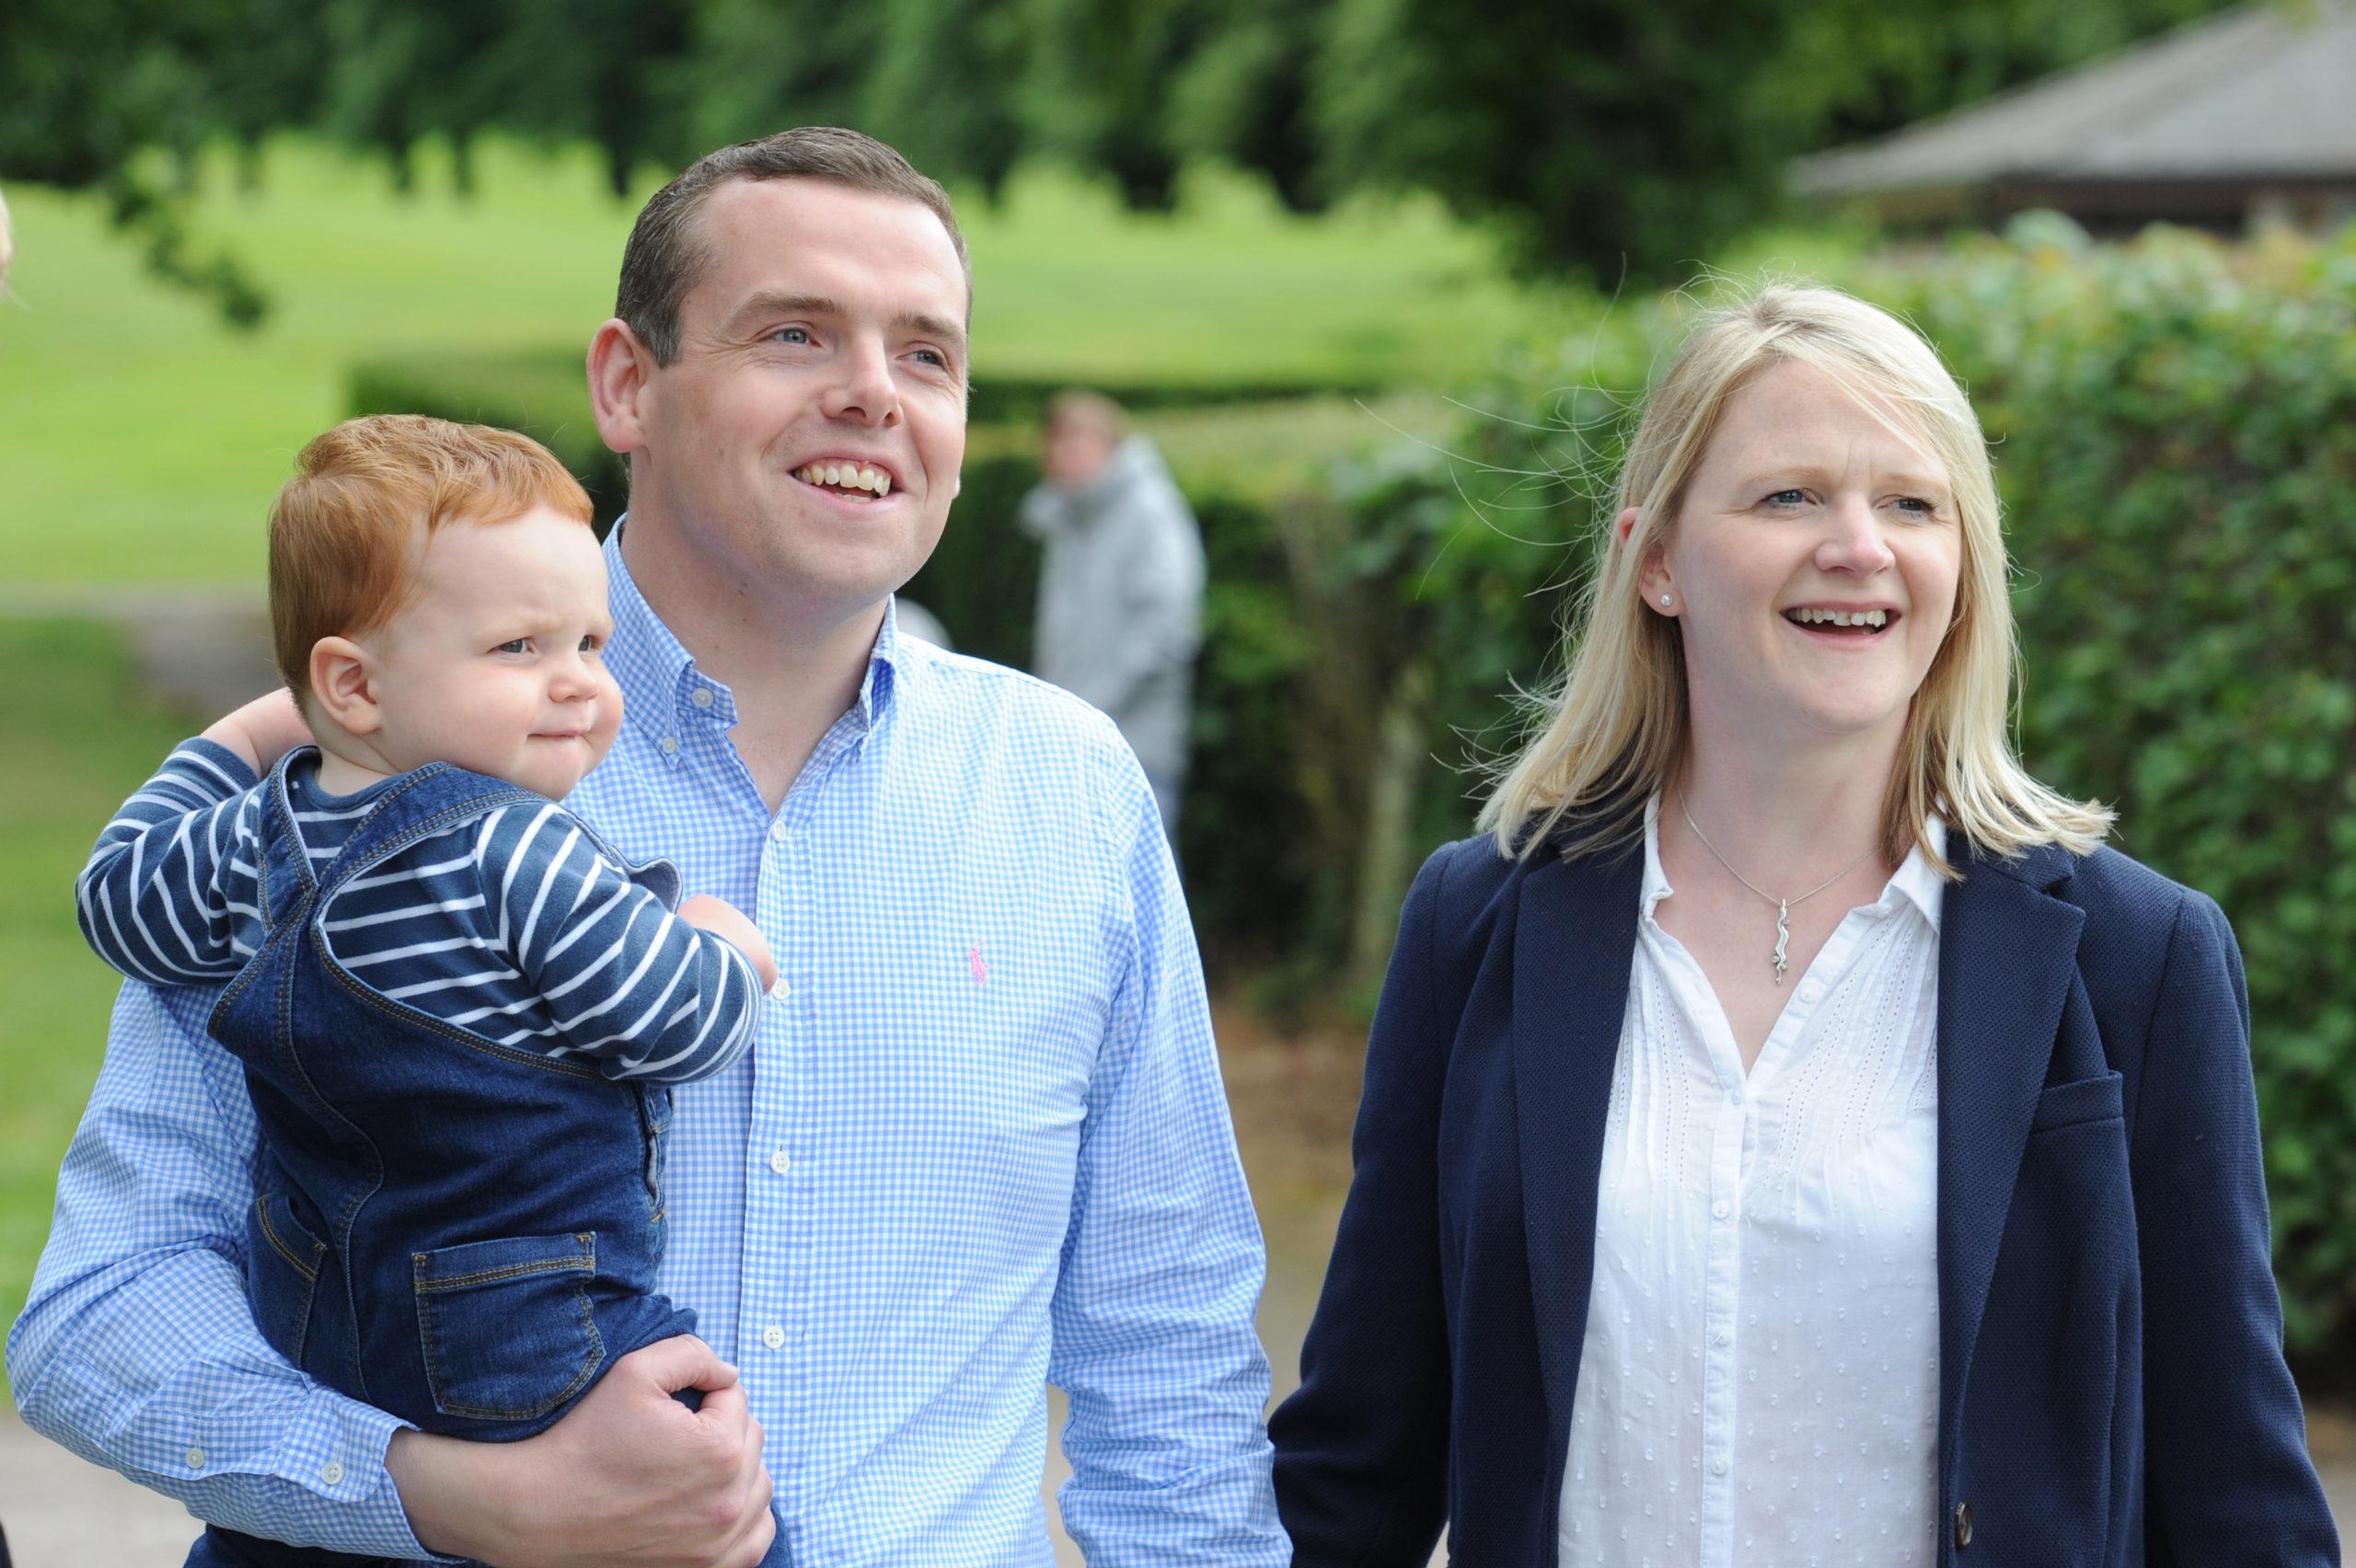 Douglas Ross with wife Krystle and son Alistair in Grant Park, Forres after being appointed leader of the Scottish Conservatives today.